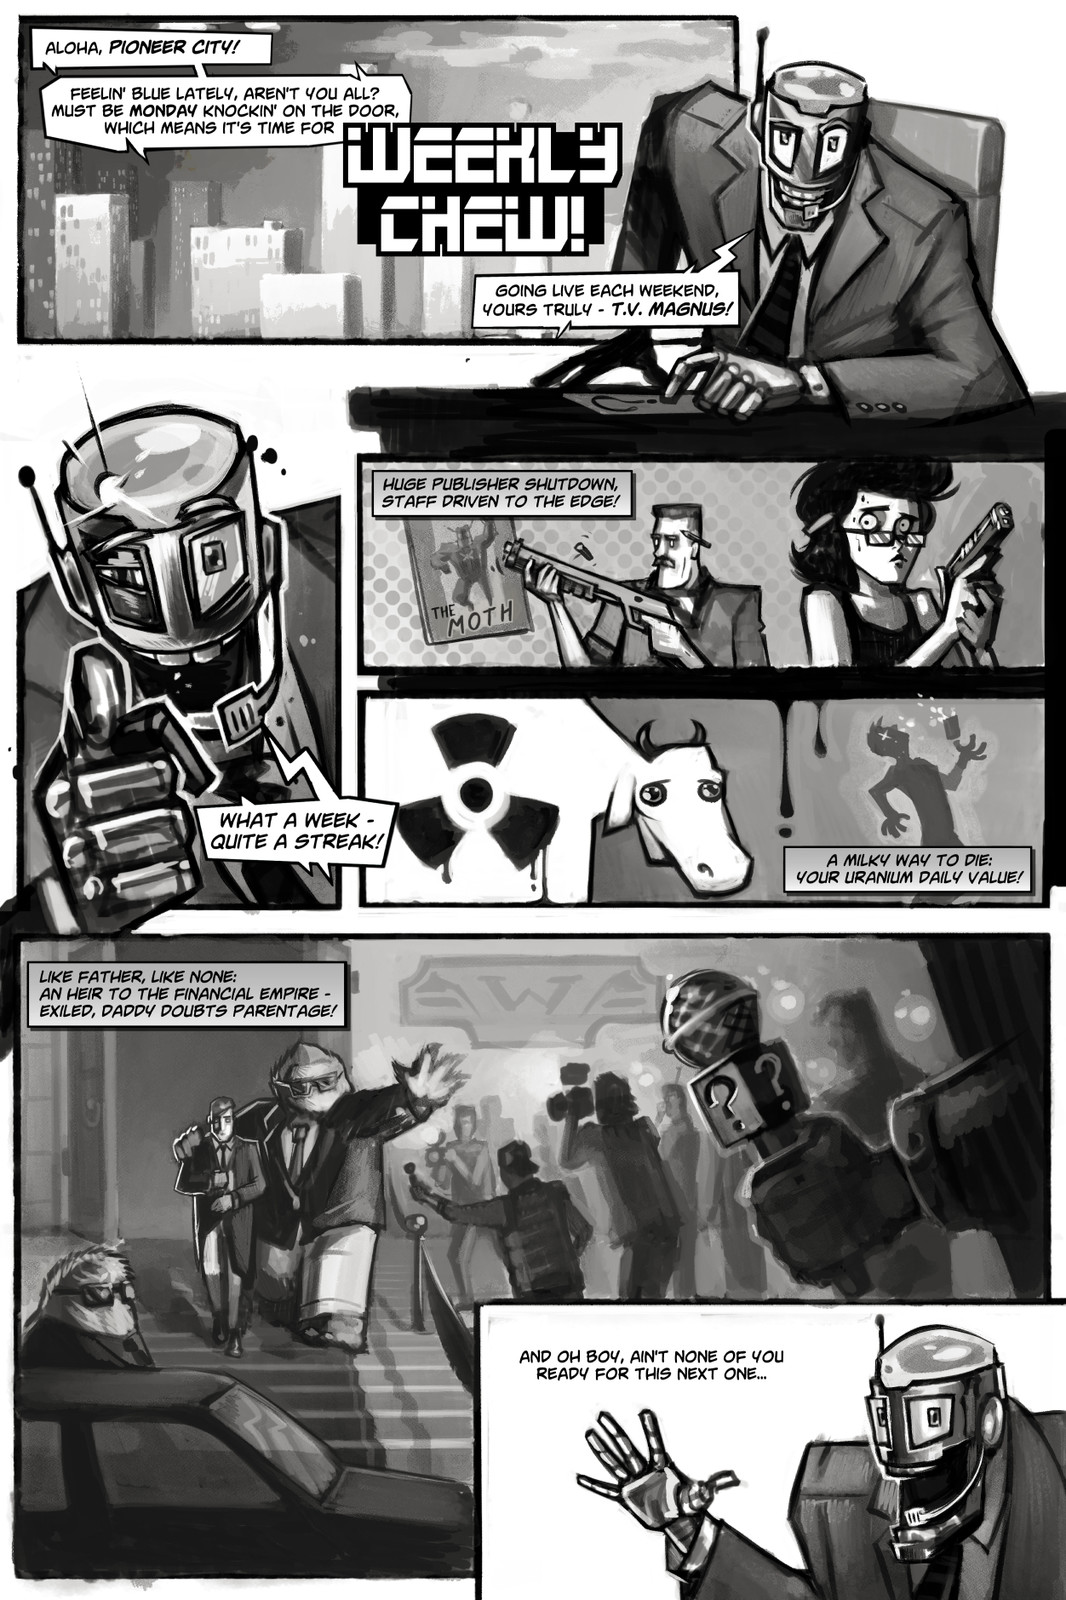 The MOTH! - Page 1